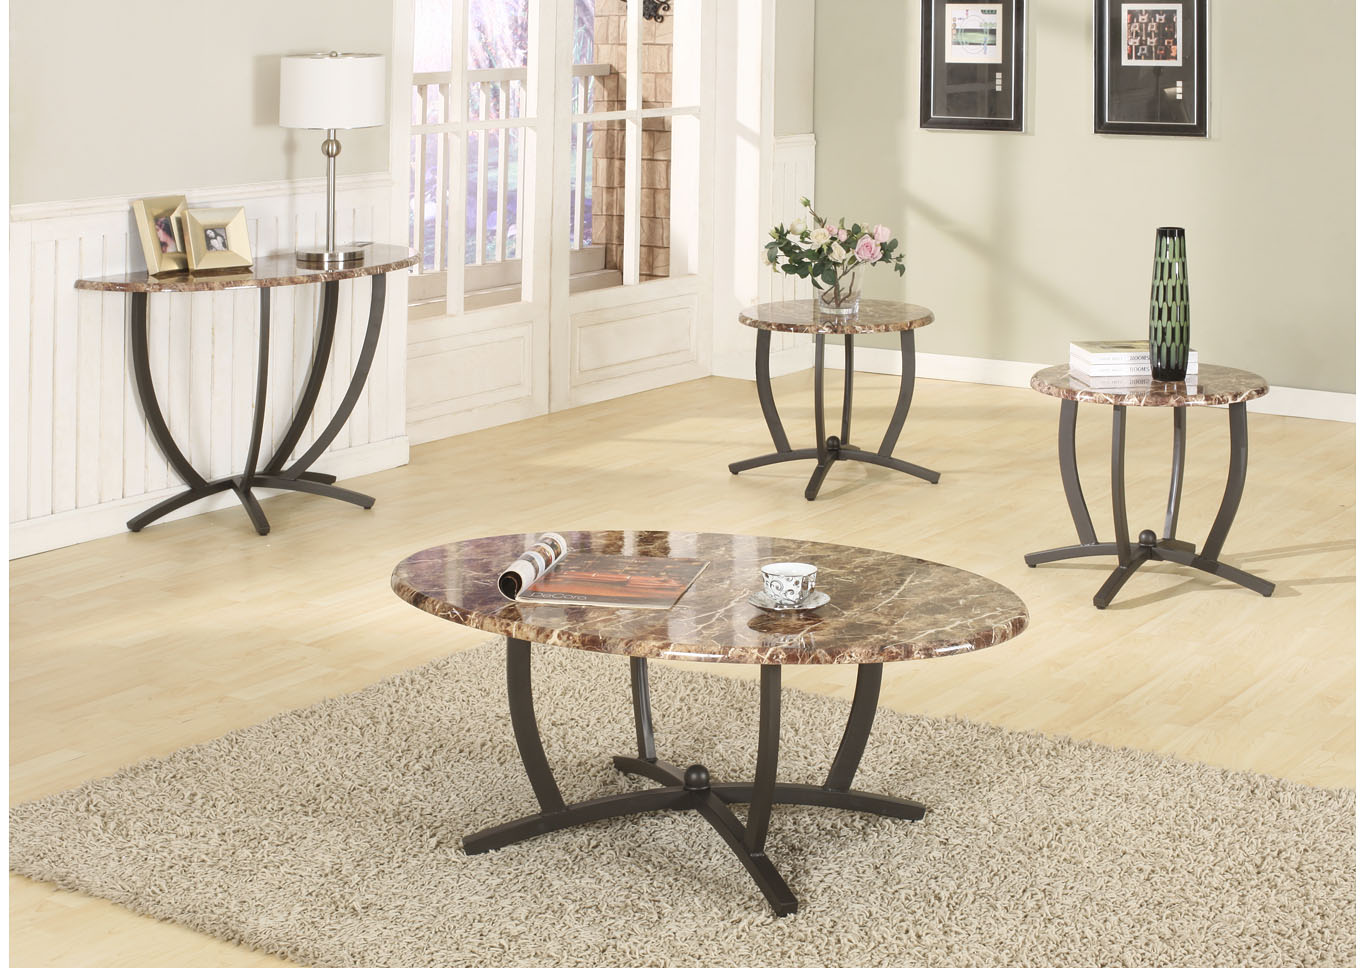 Brown 3 Piece Faux Marble Coffee & End Table Set Shoppers World Flooring & Furniture